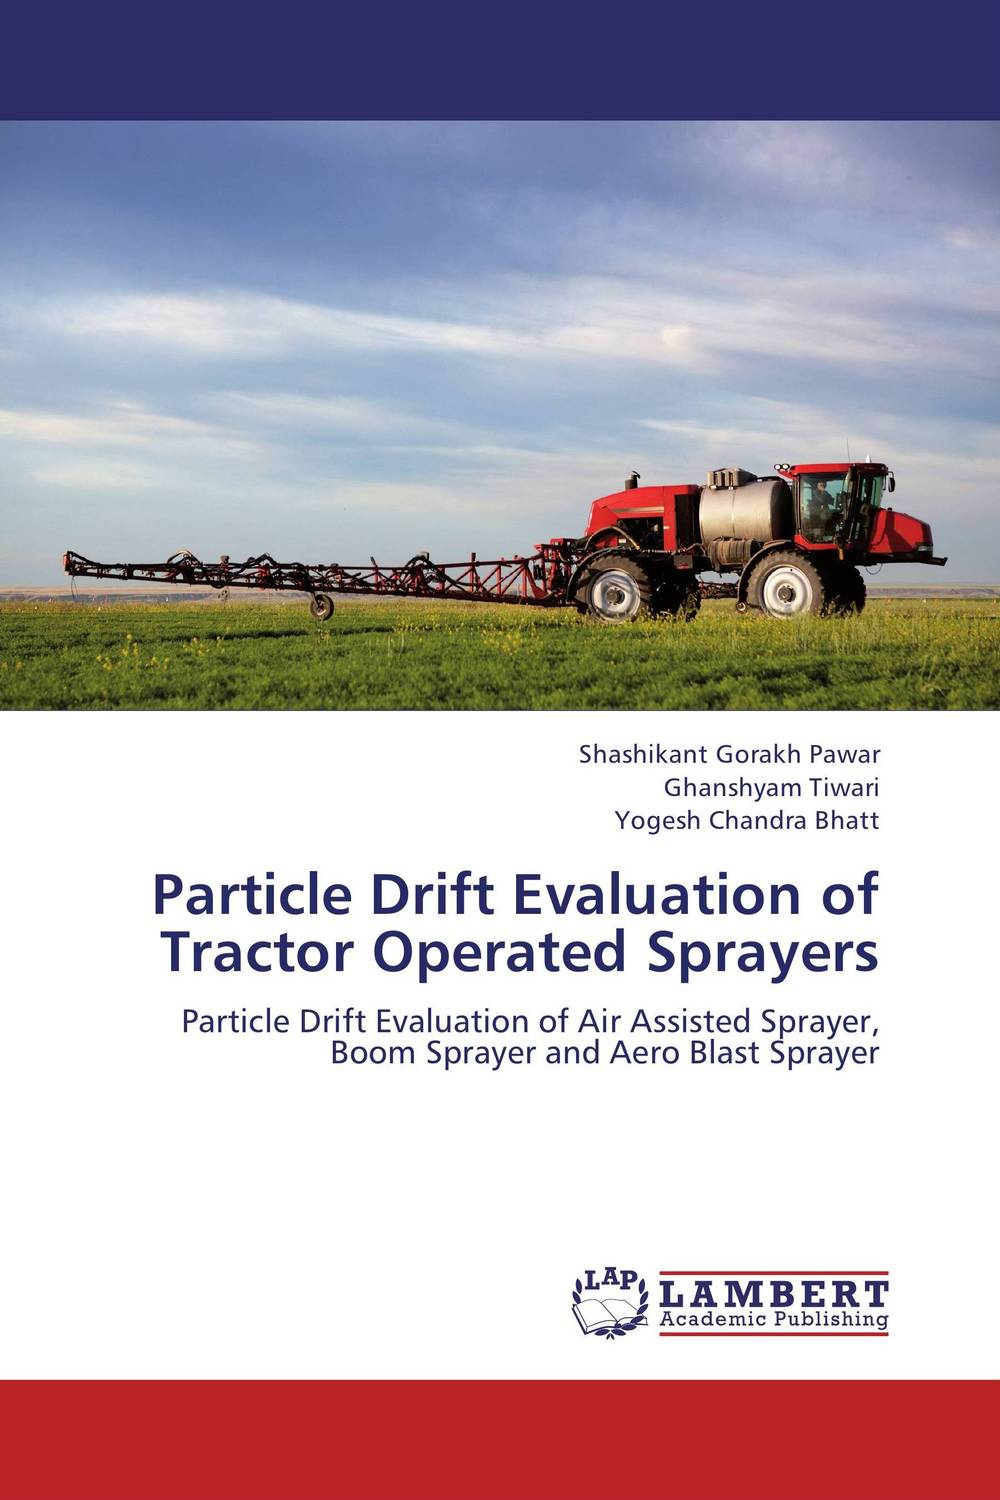 Particle Drift Evaluation of Tractor Operated Sprayers md rabiul islam s m ibrahim sumon and farhana lipi phytochemical evaluation of leaves of cymbopogan citratus